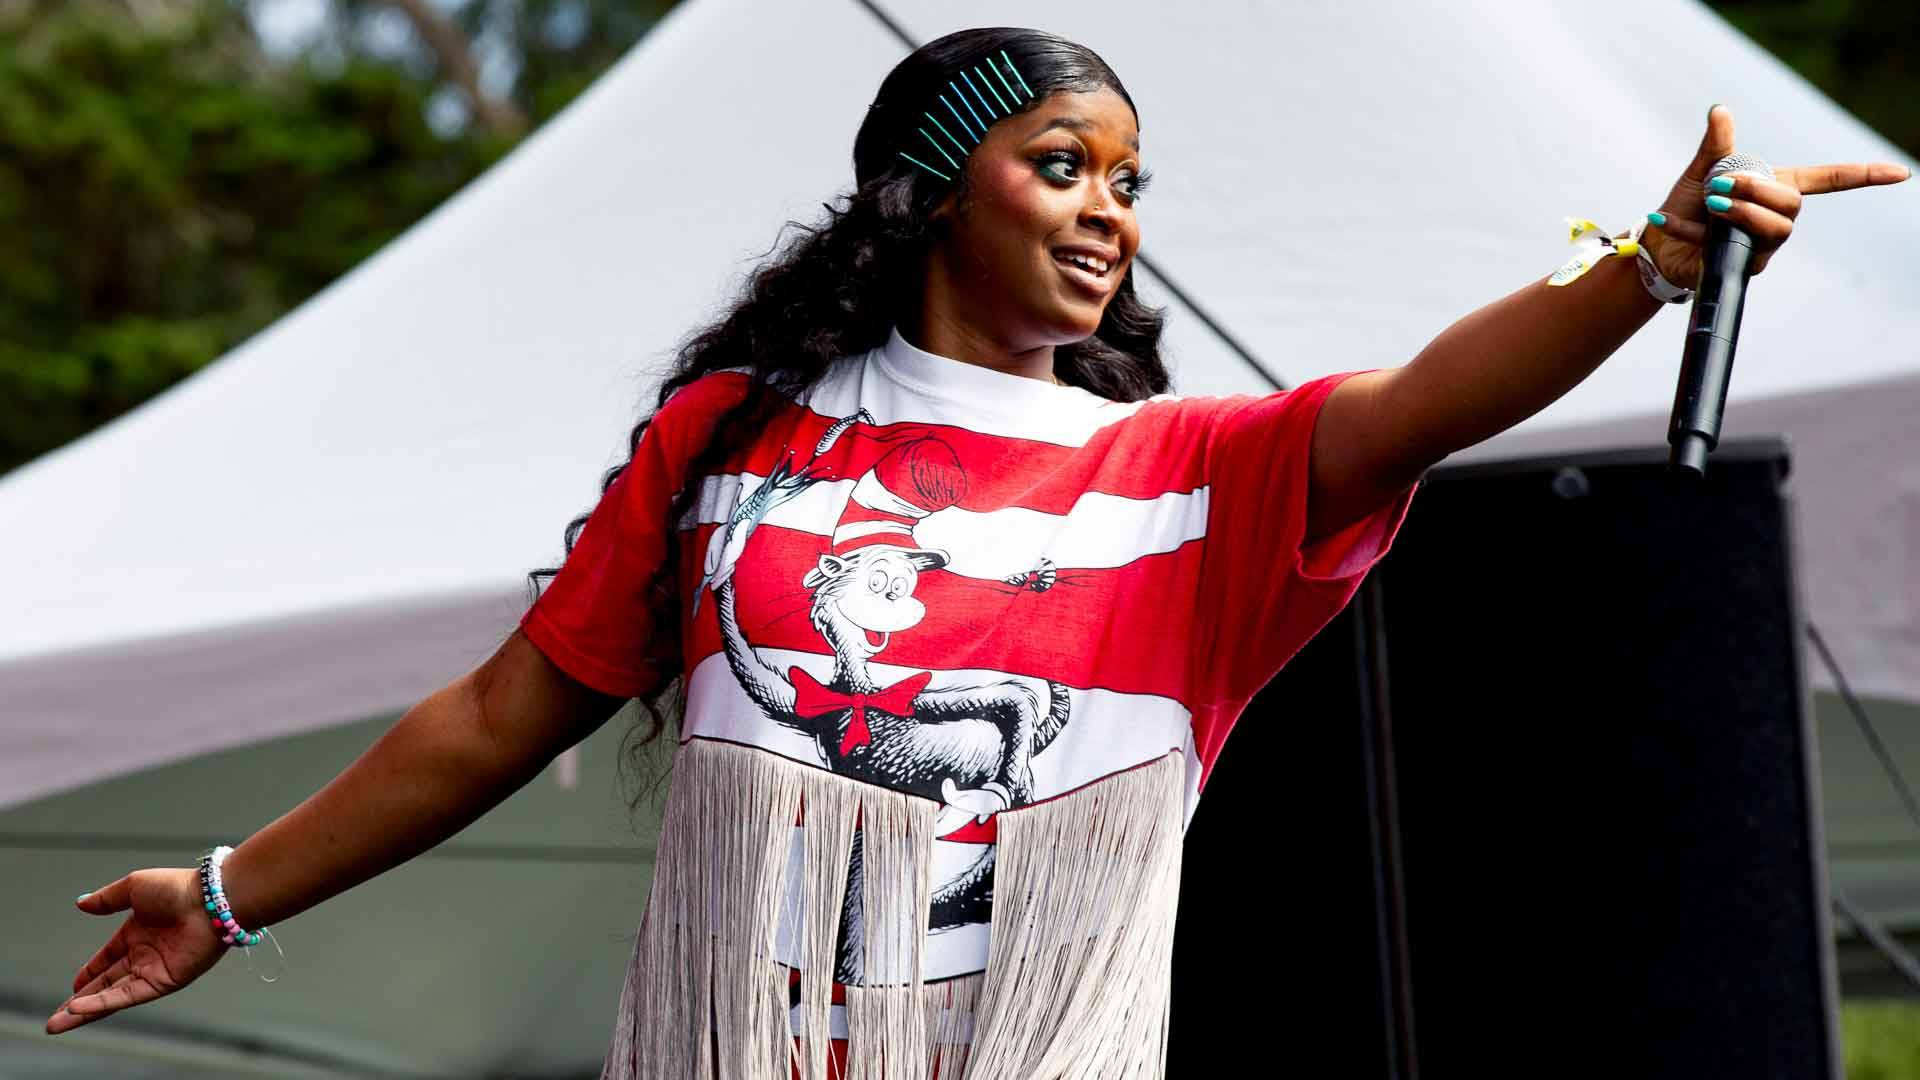 Tierra Whack performs at Outside Lands music festival in San Francisco, Aug. 10, 2019. Estefany Gonzalez